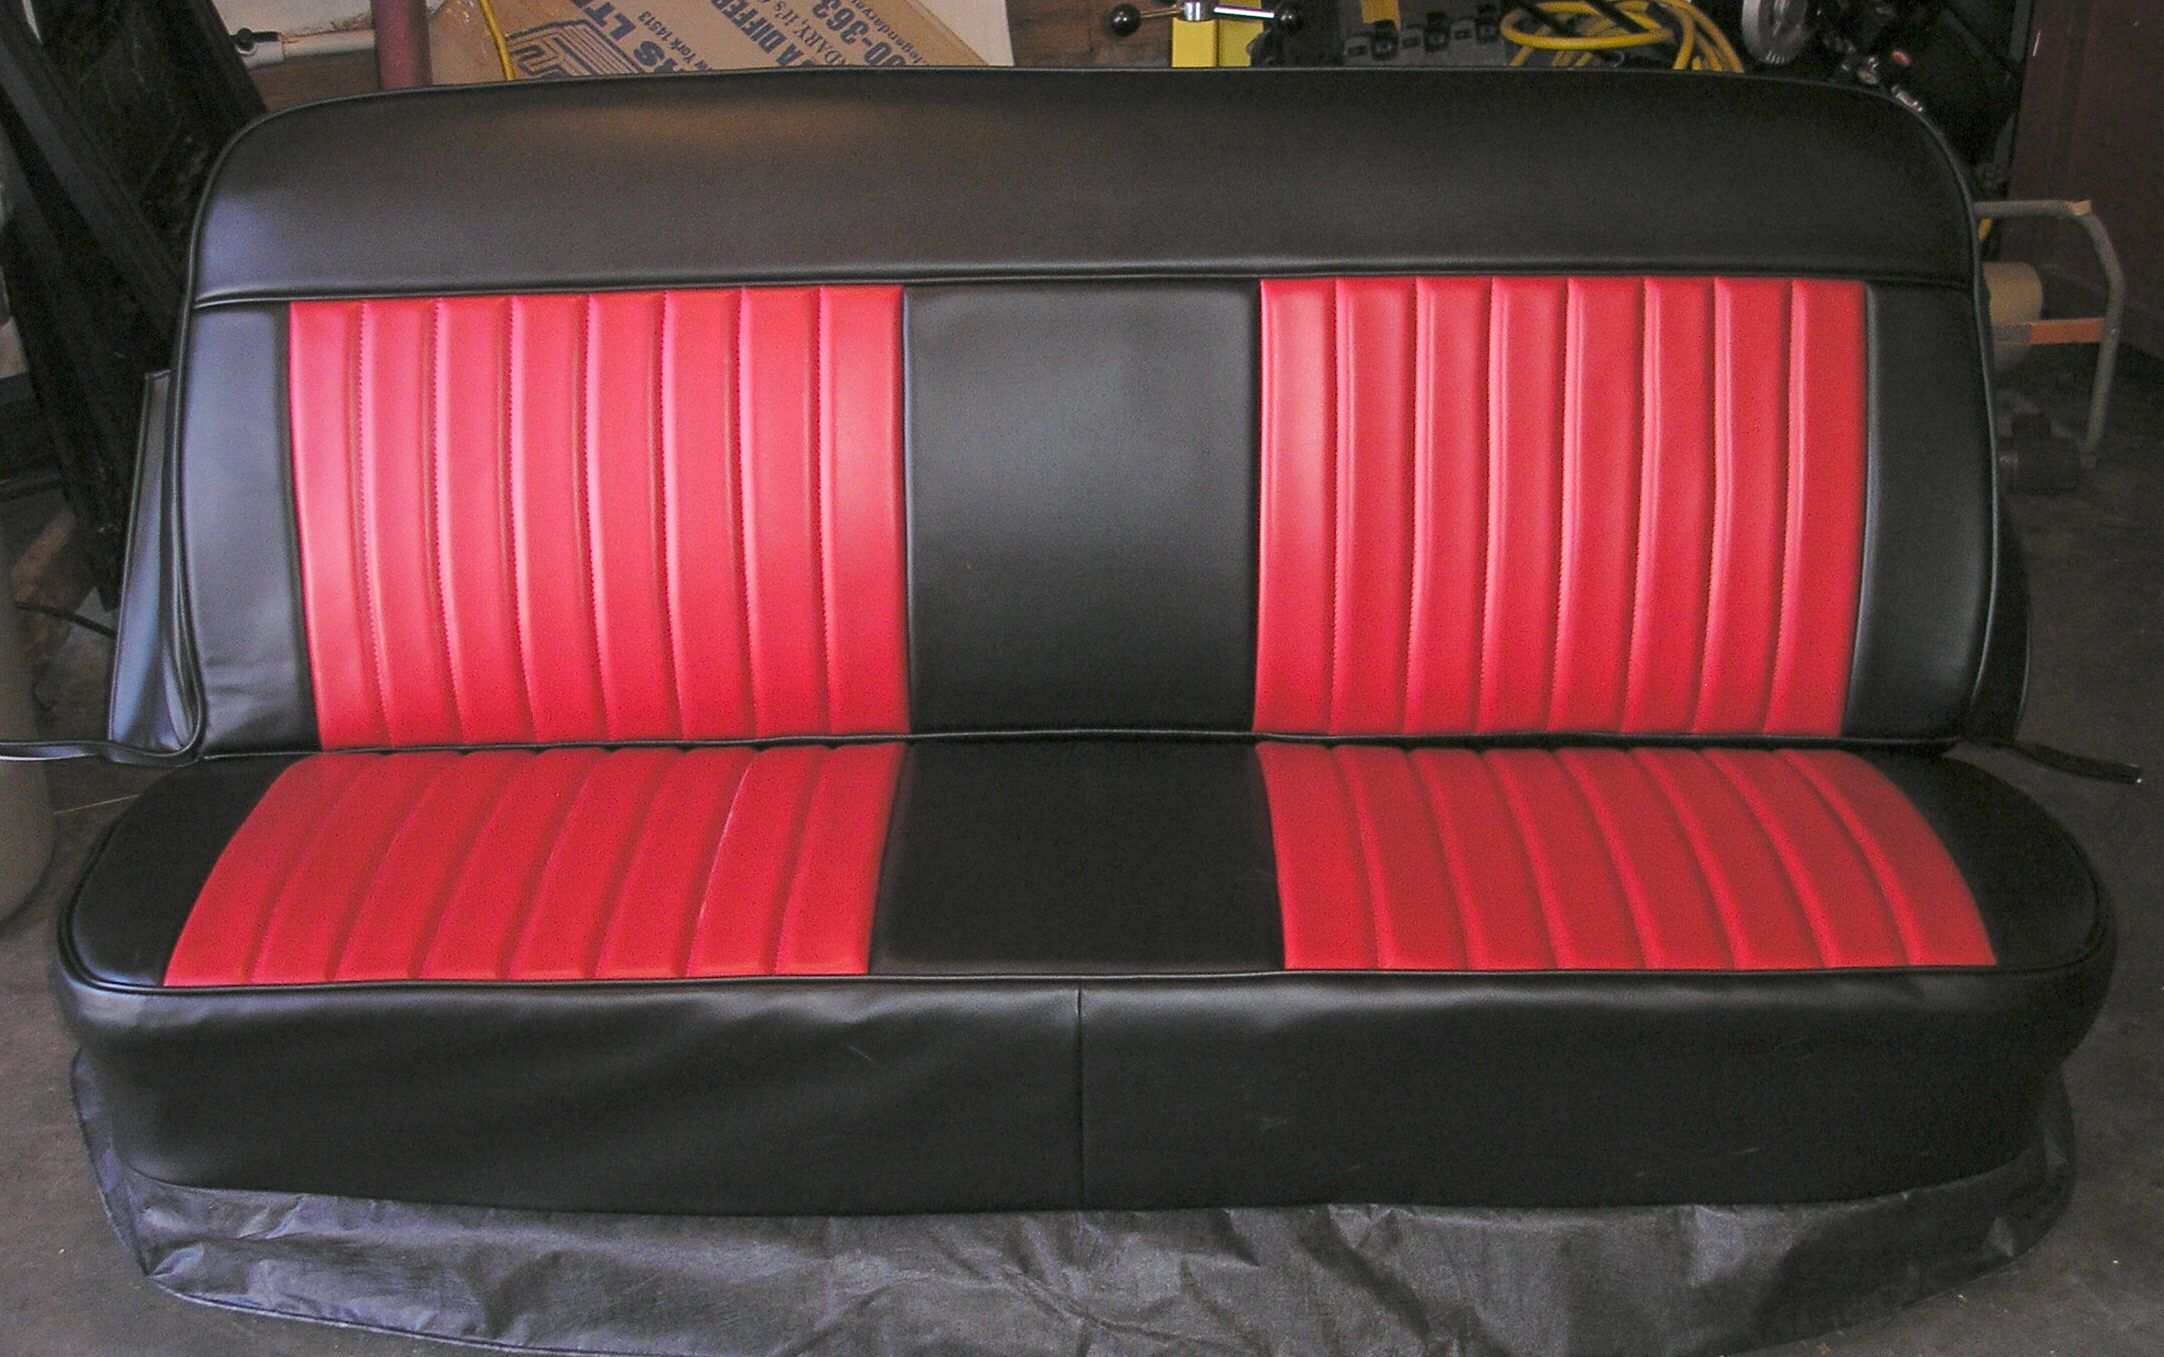 6772insert.jpg (2164×1357) Truck interior, Black bench